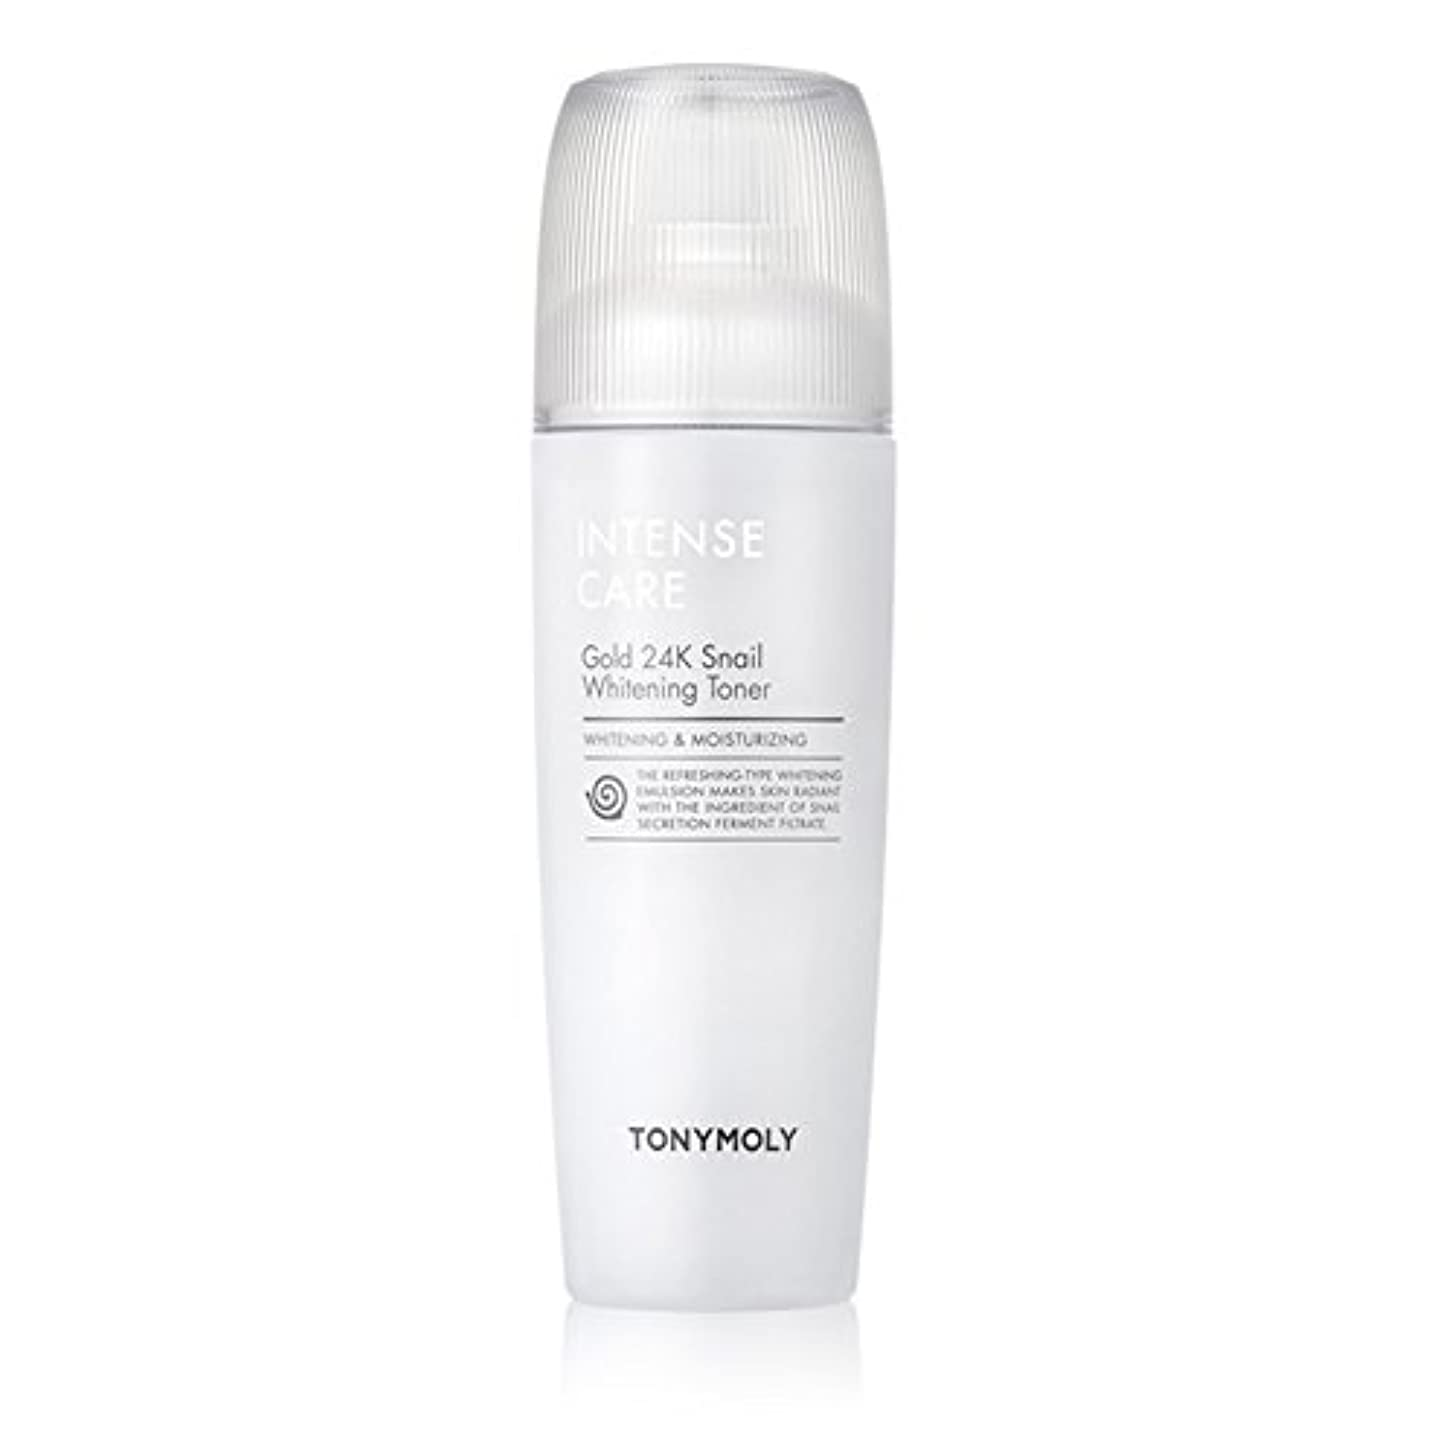 負荷トーン未使用トニモリー TONYMOLY Intense Care Gold 24K Snail Whitening Toner 130ml